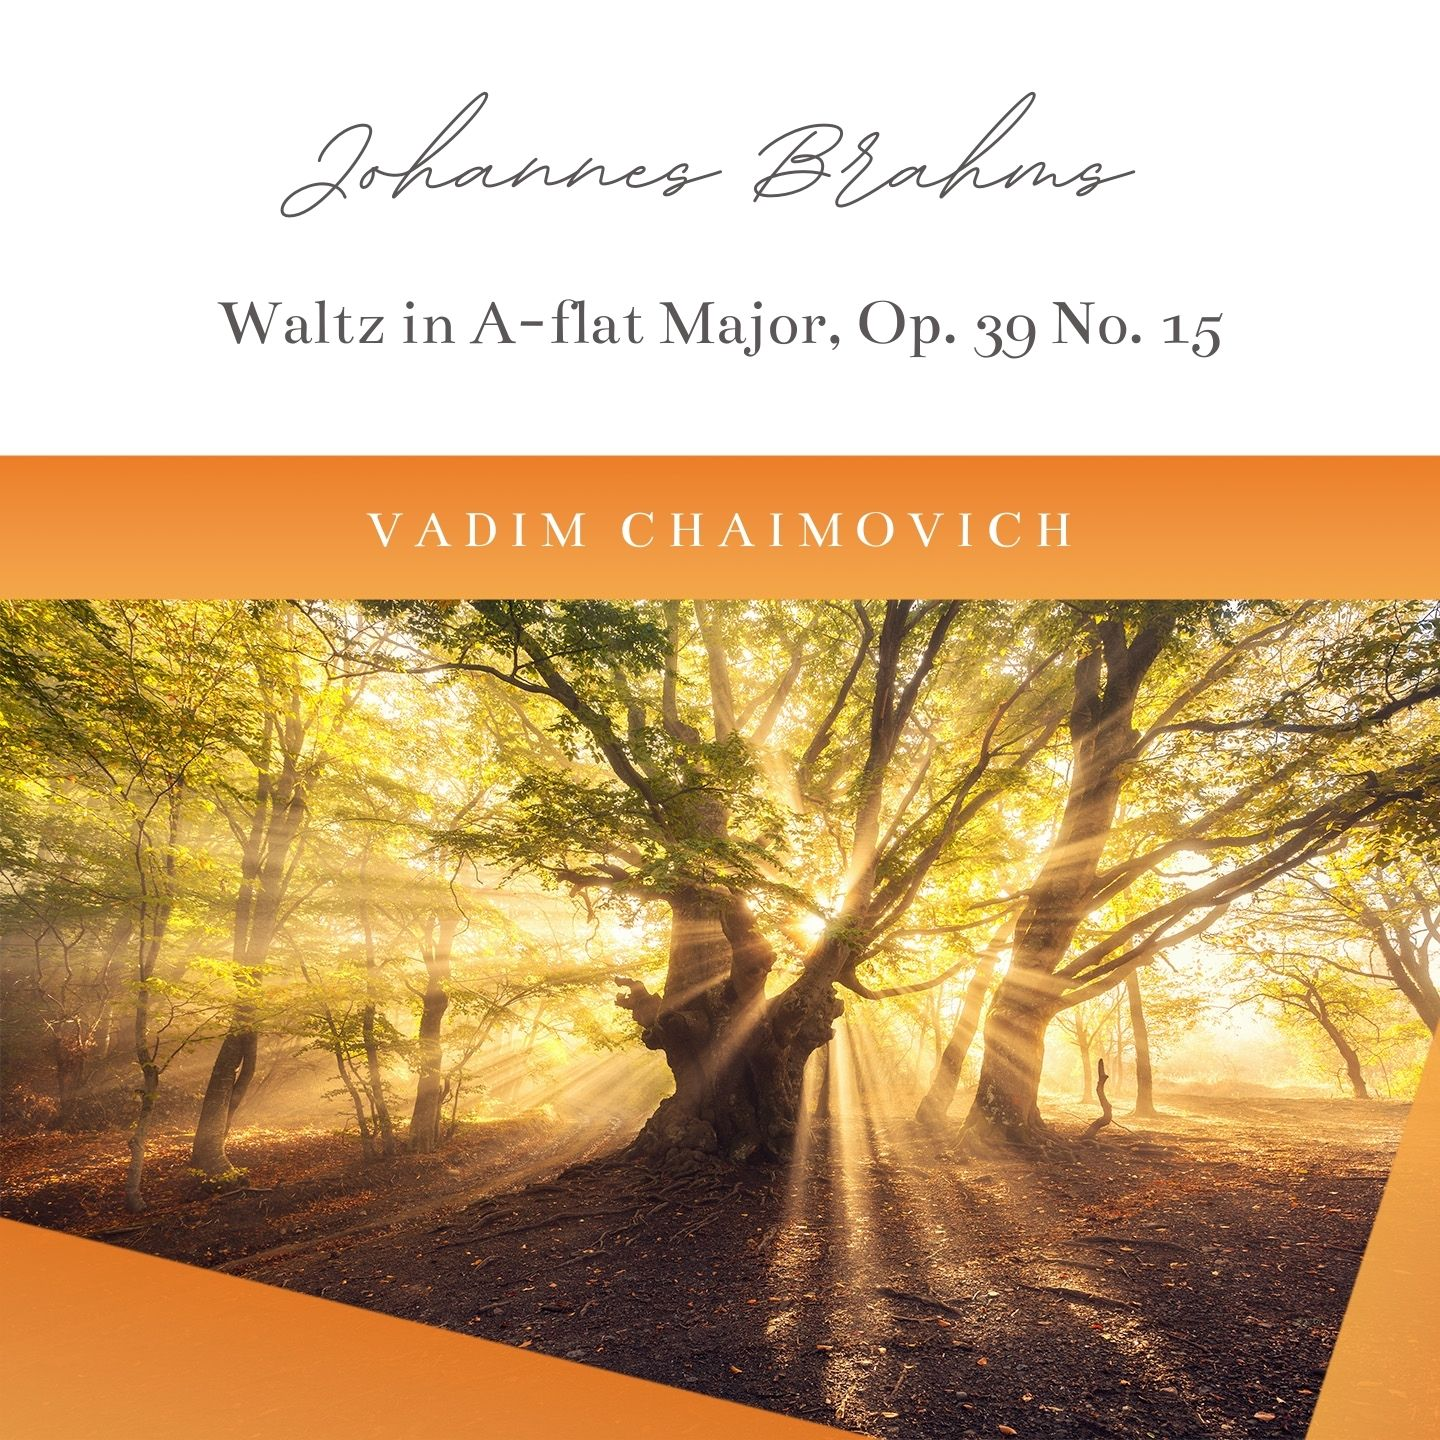 16 Waltzes, Op. 39: No. 15 in A-Flat Major